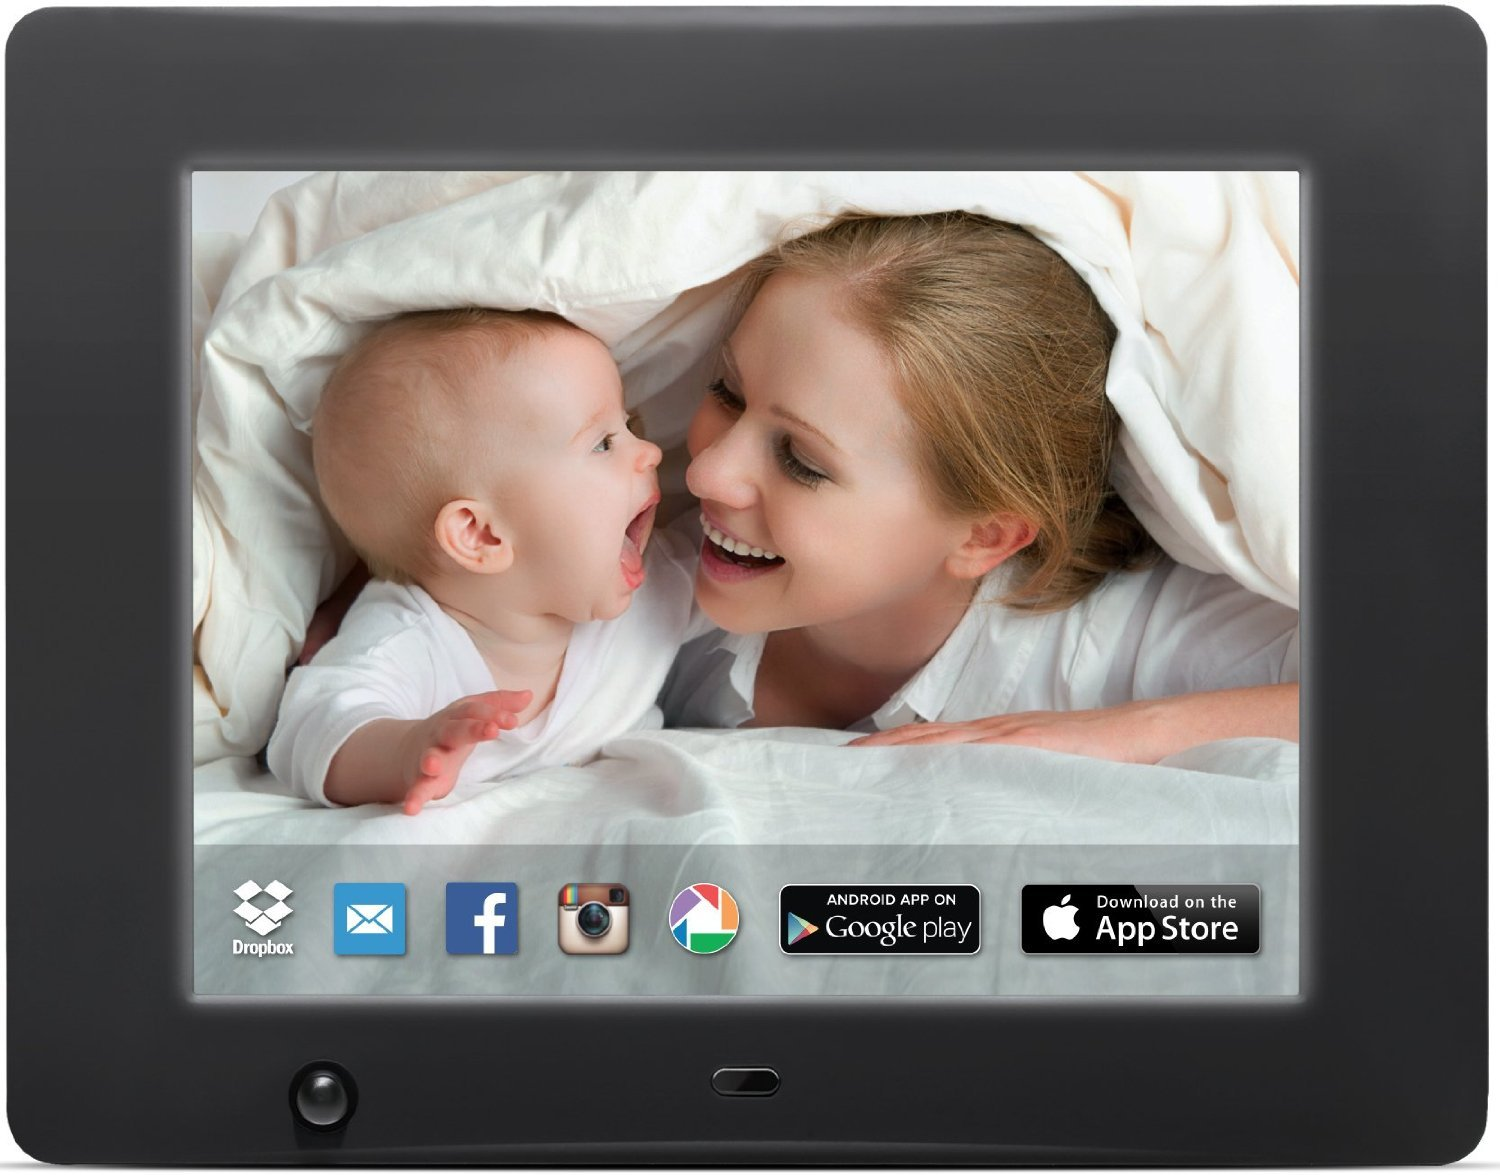 Top 10 Best WiFi Digital Photo Picture Frame 2016-2017 on Flipboard